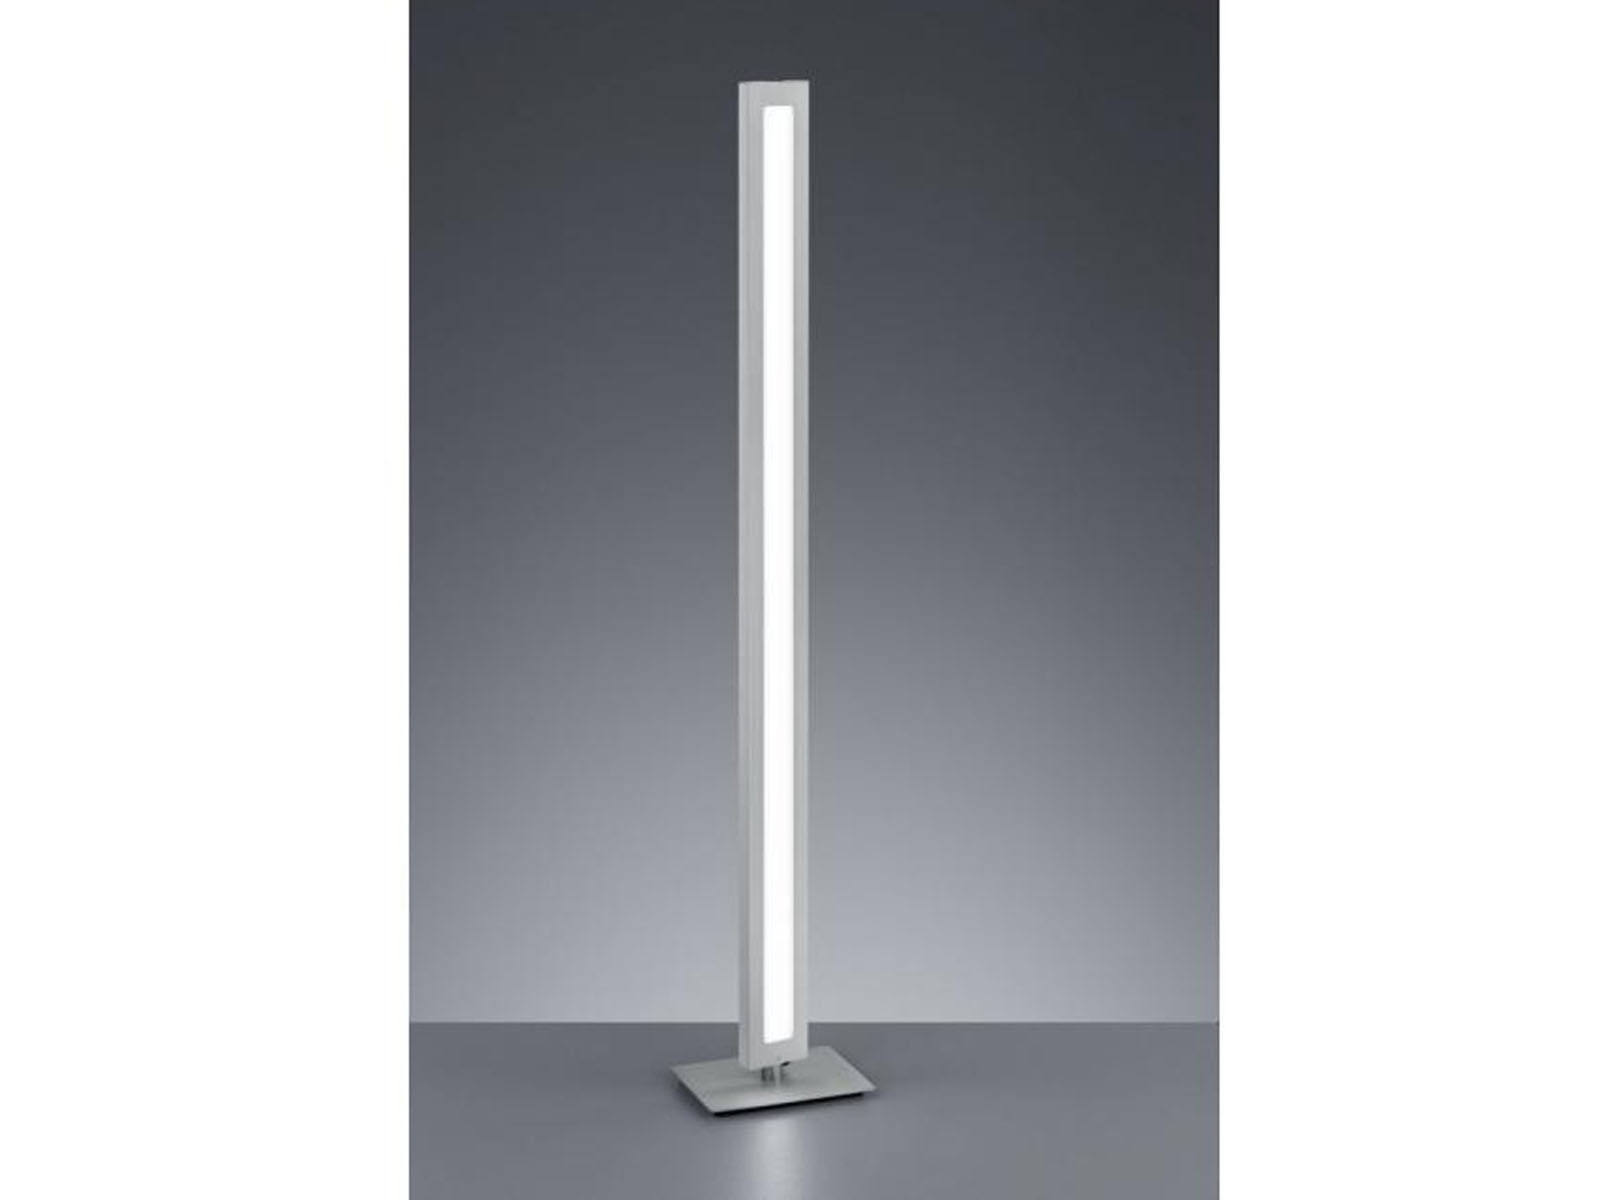 Standleuchte Dimmbar Trio Design Led Stehlampe Silas Mit Dimmer